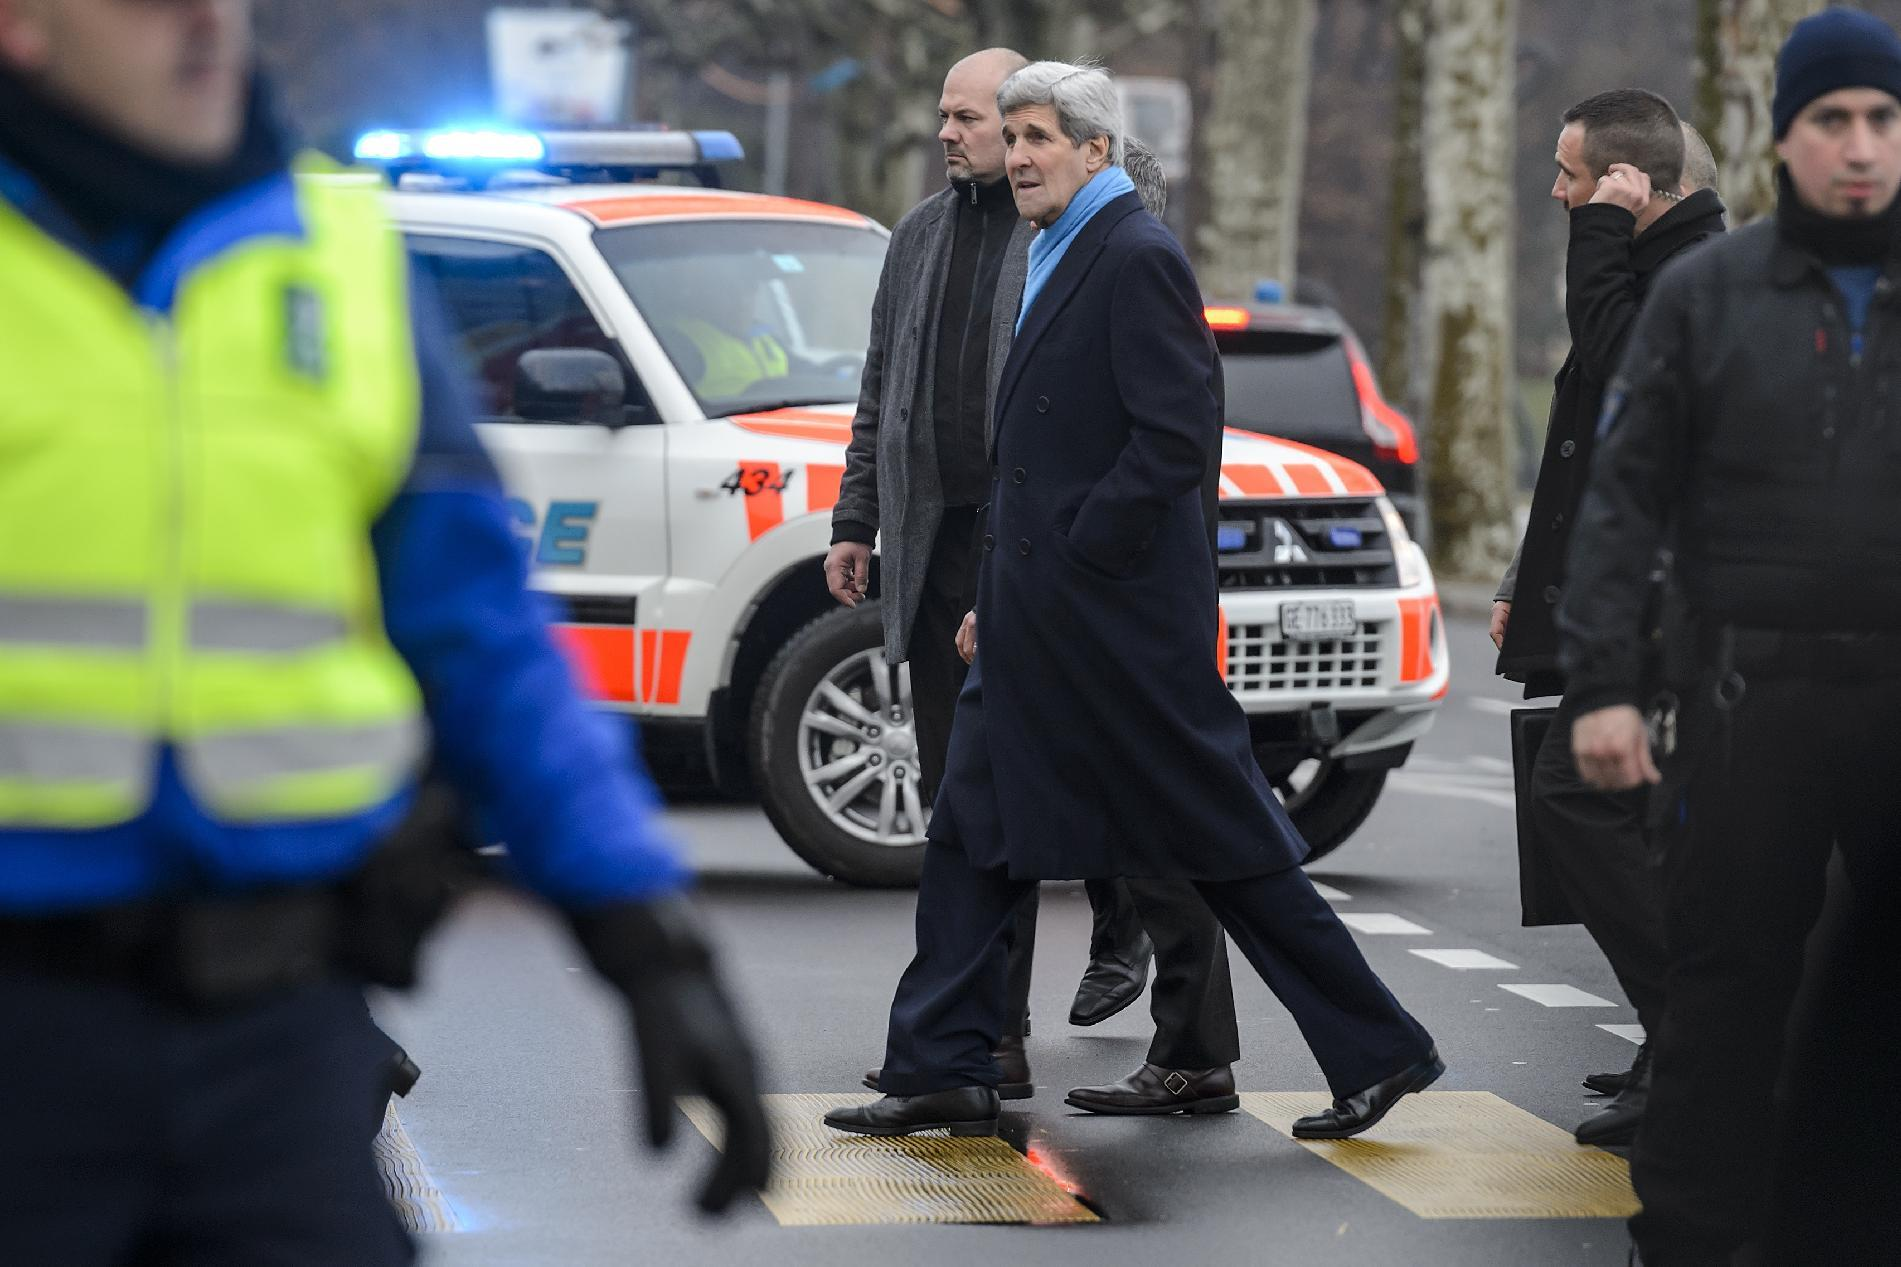 US Secretary of State John Kerry, pictured, met twice in Geneva with Iranian Foreign Minister Mohammad Javad Zarif on Sunday and Monday